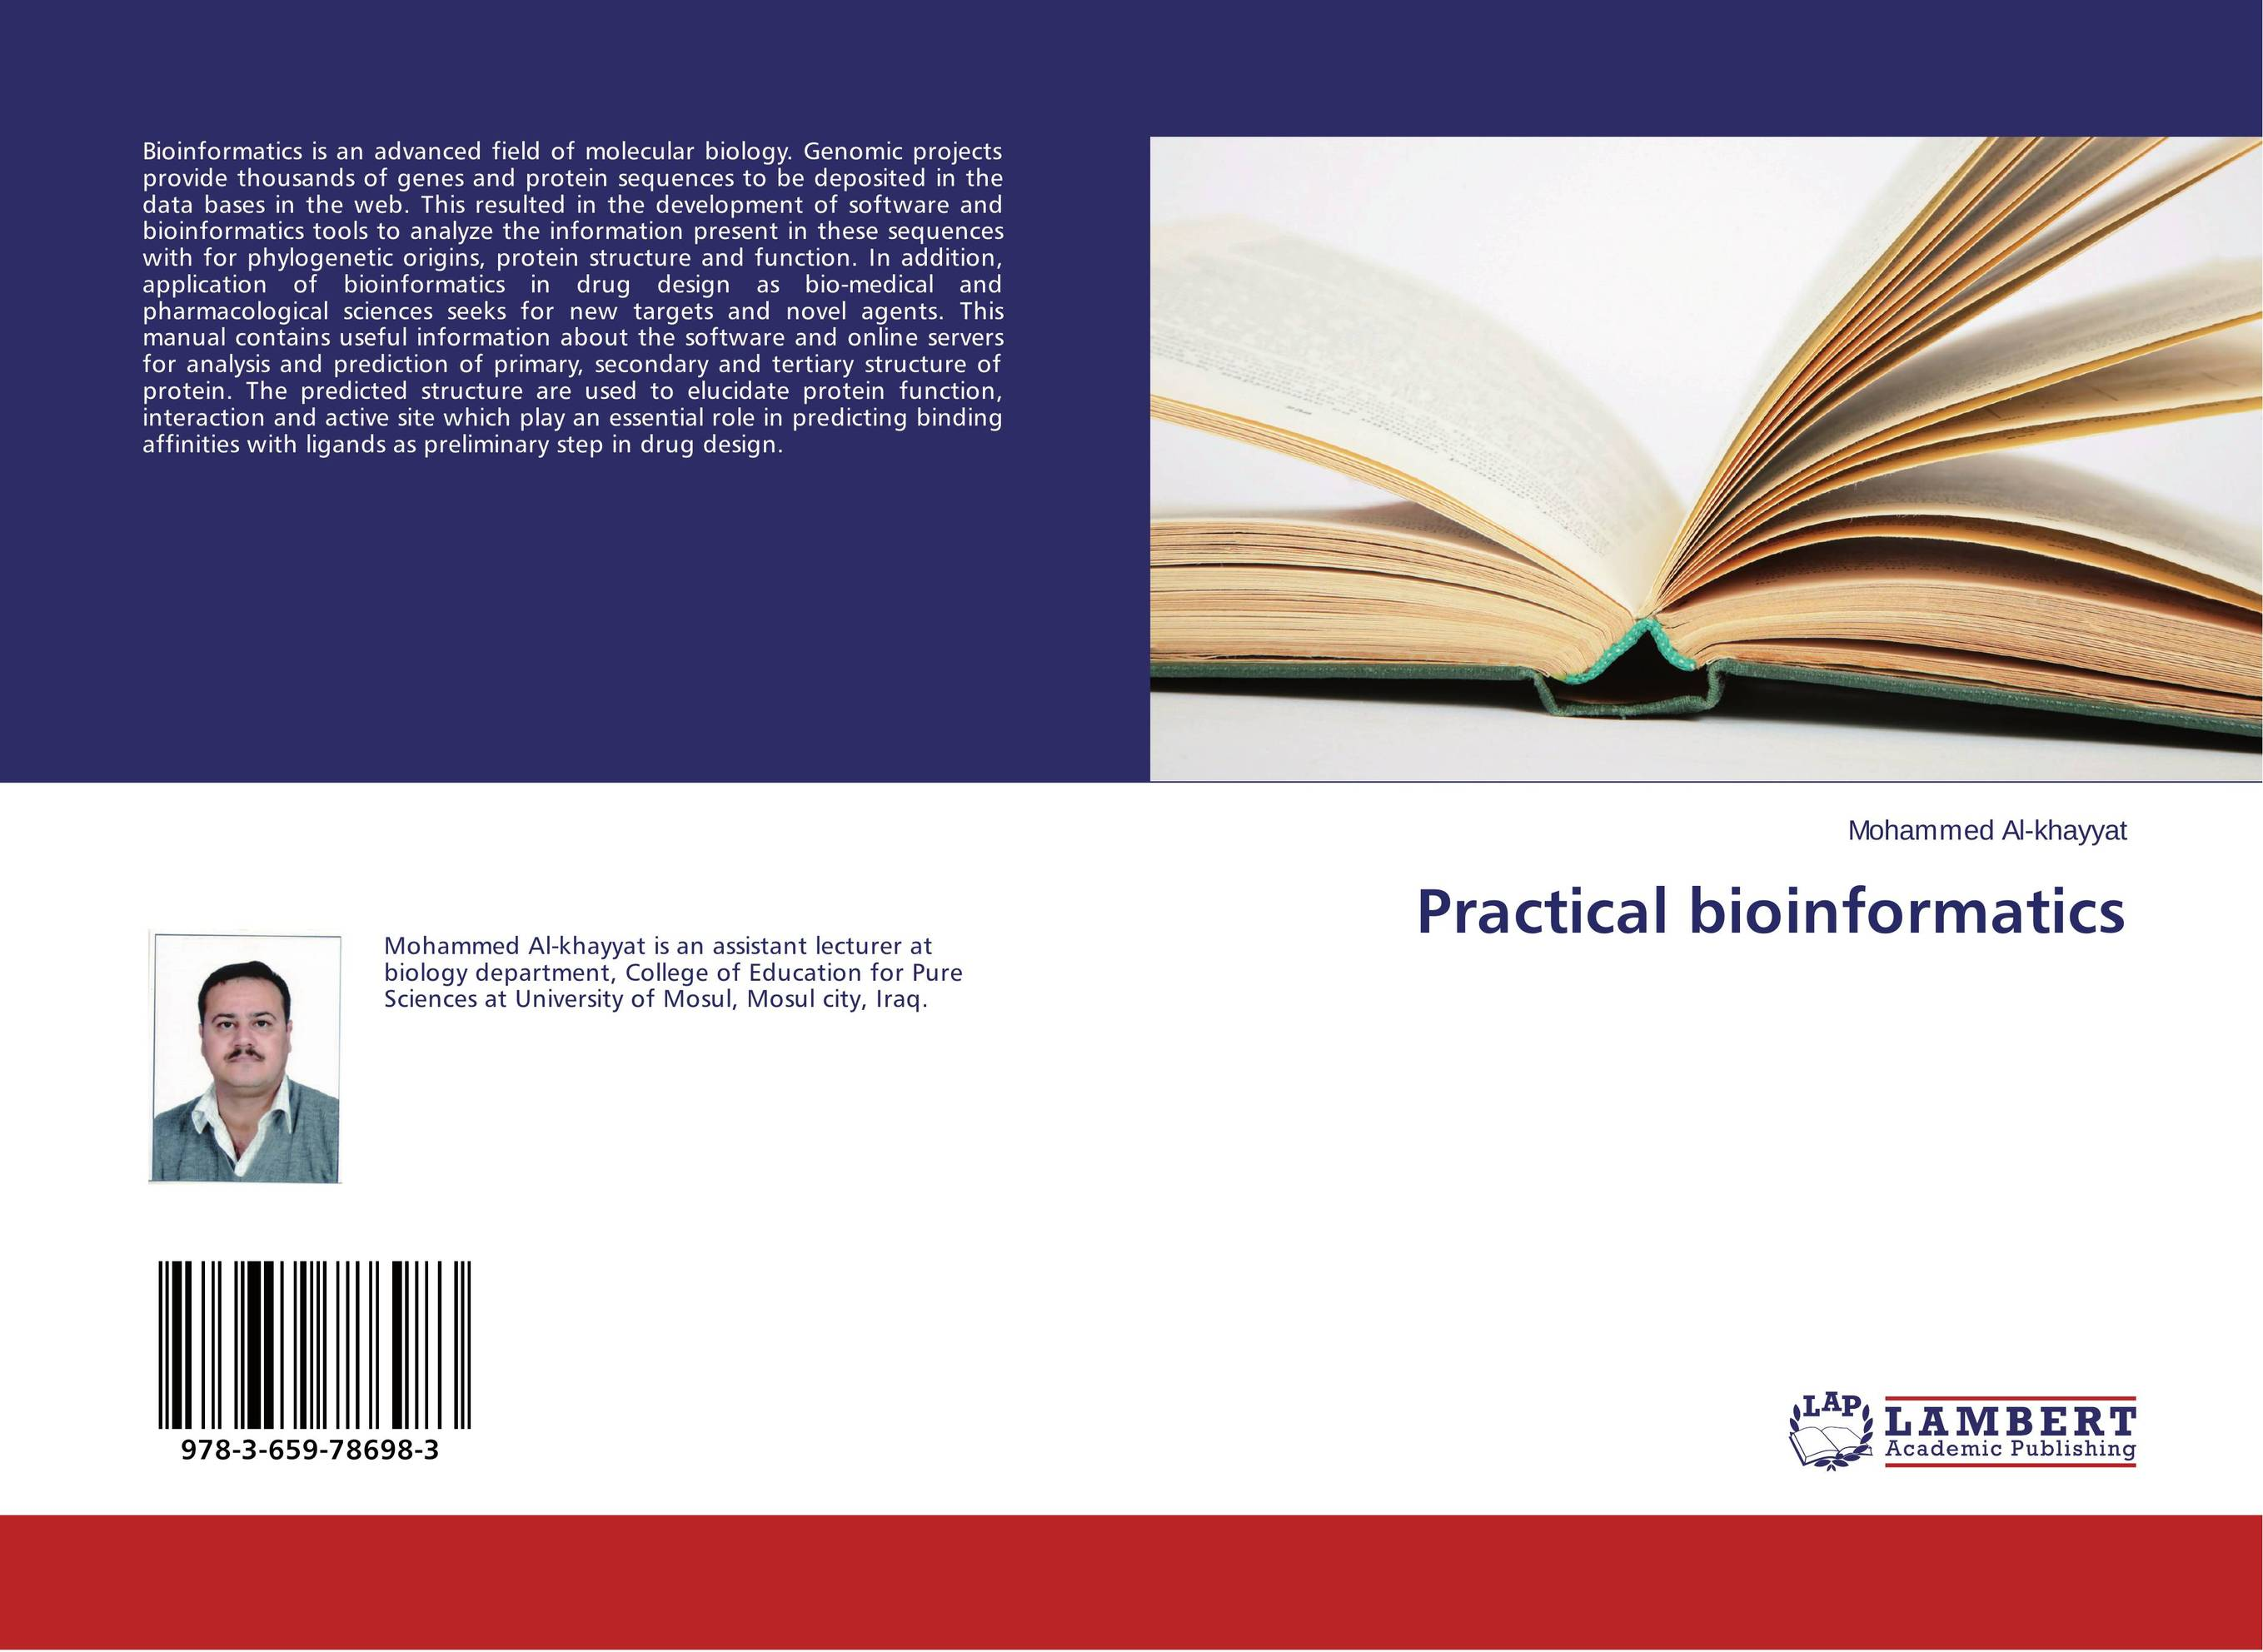 Practical bioinformatics bioinformatic approaches to structure and function of protein